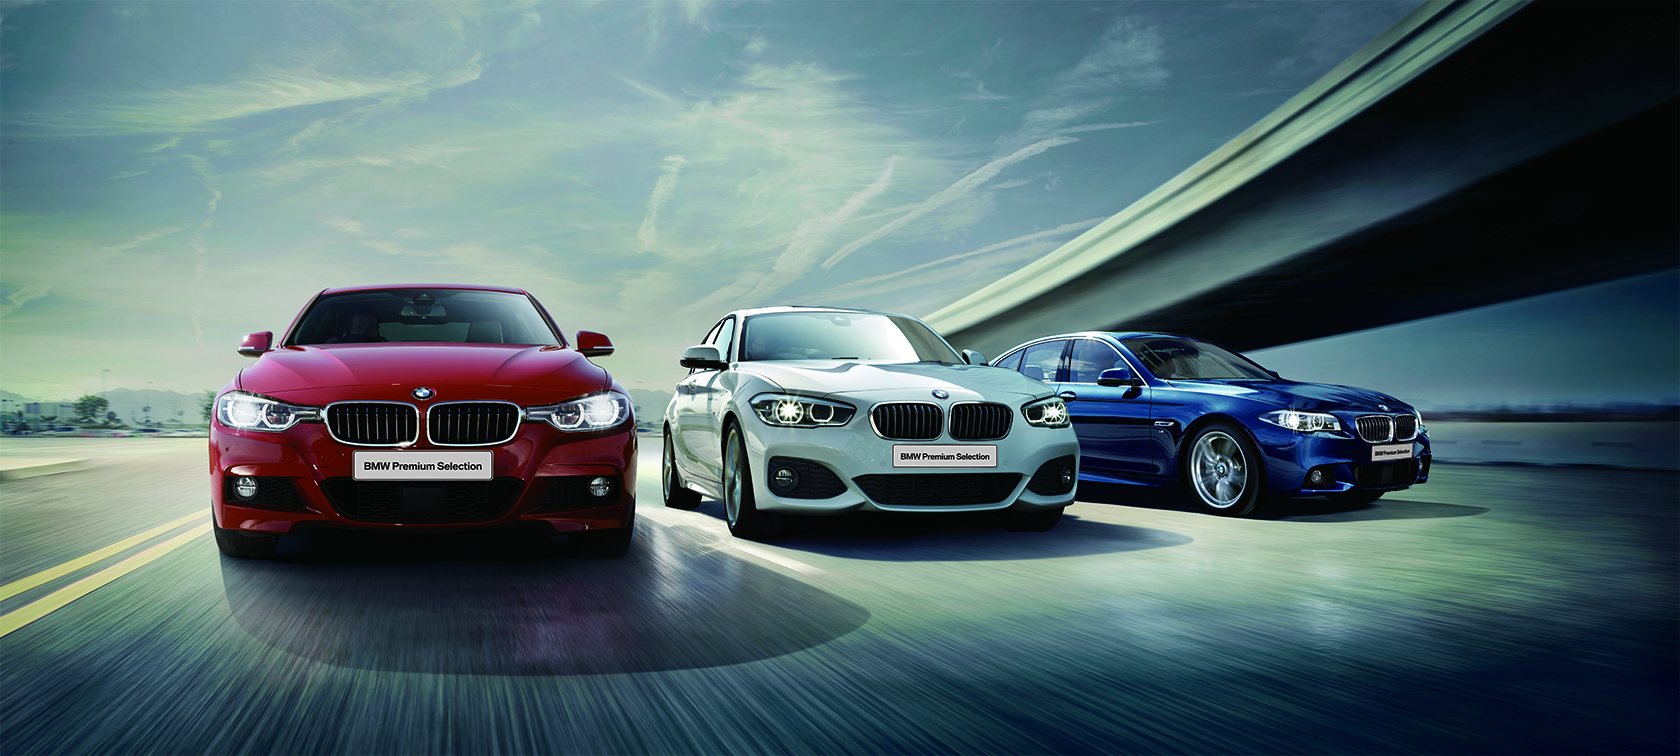 Bmw bmw japan for Cannon motor company preowned